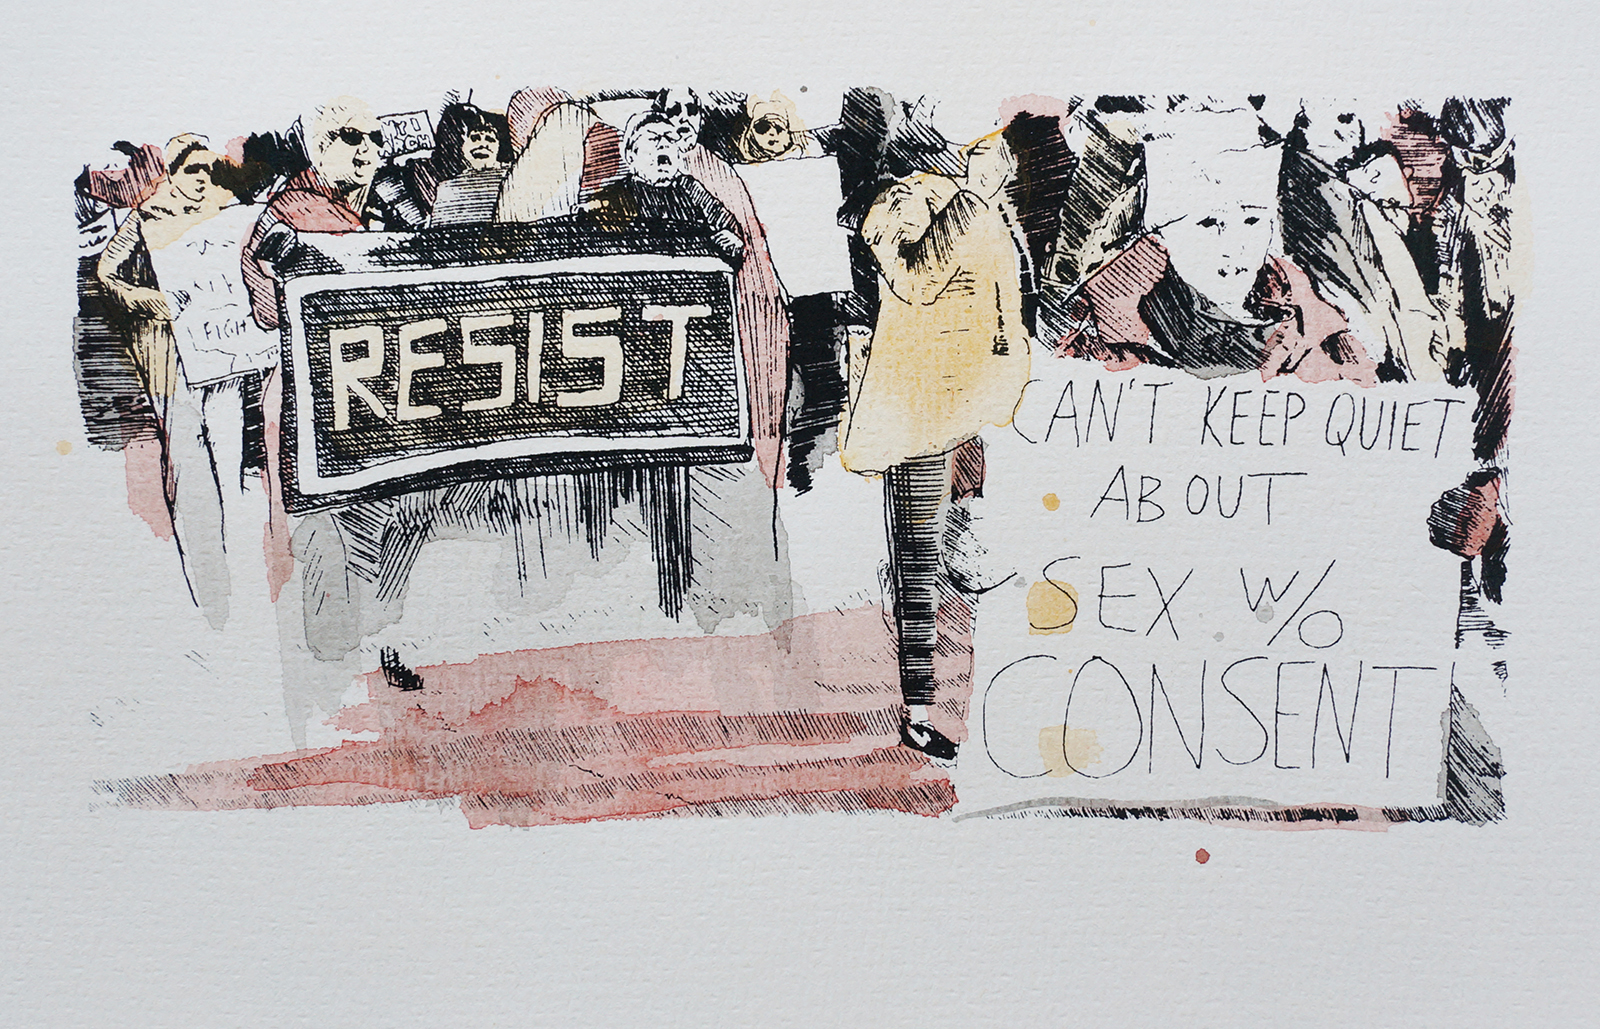 Ape_Bleakney_March Mixed Media - 'Can't Keep Quiet (3)', 6.5''x9.5'', Screen Print + Watercolor, 2018 copy.jpg